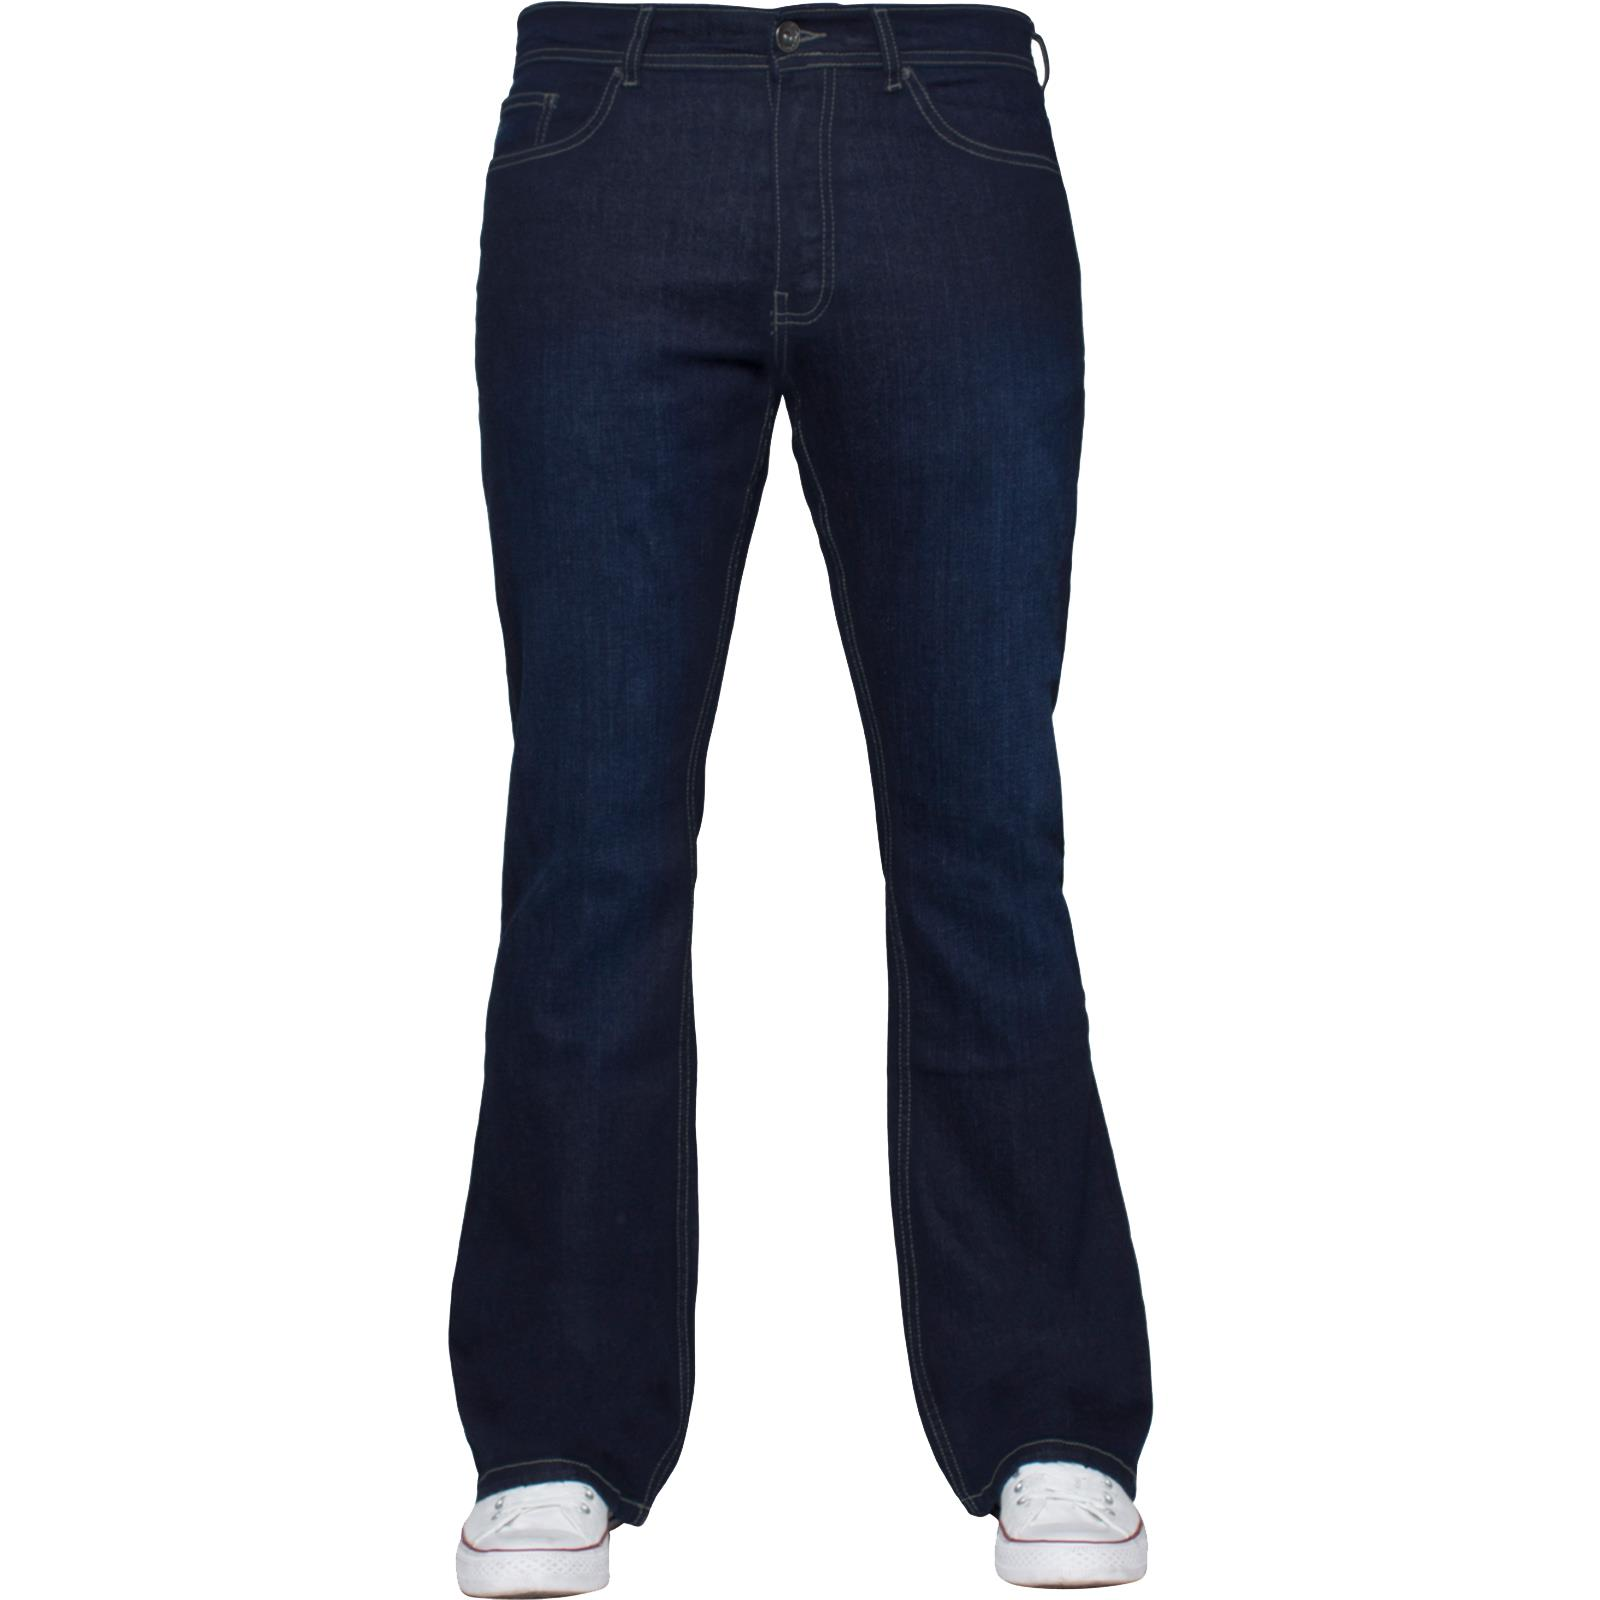 Enzo-Designer-Mens-Bootcut-Flared-Jeans-Stretch-Wide-Leg-Denim-Pants-All-Sizes thumbnail 18